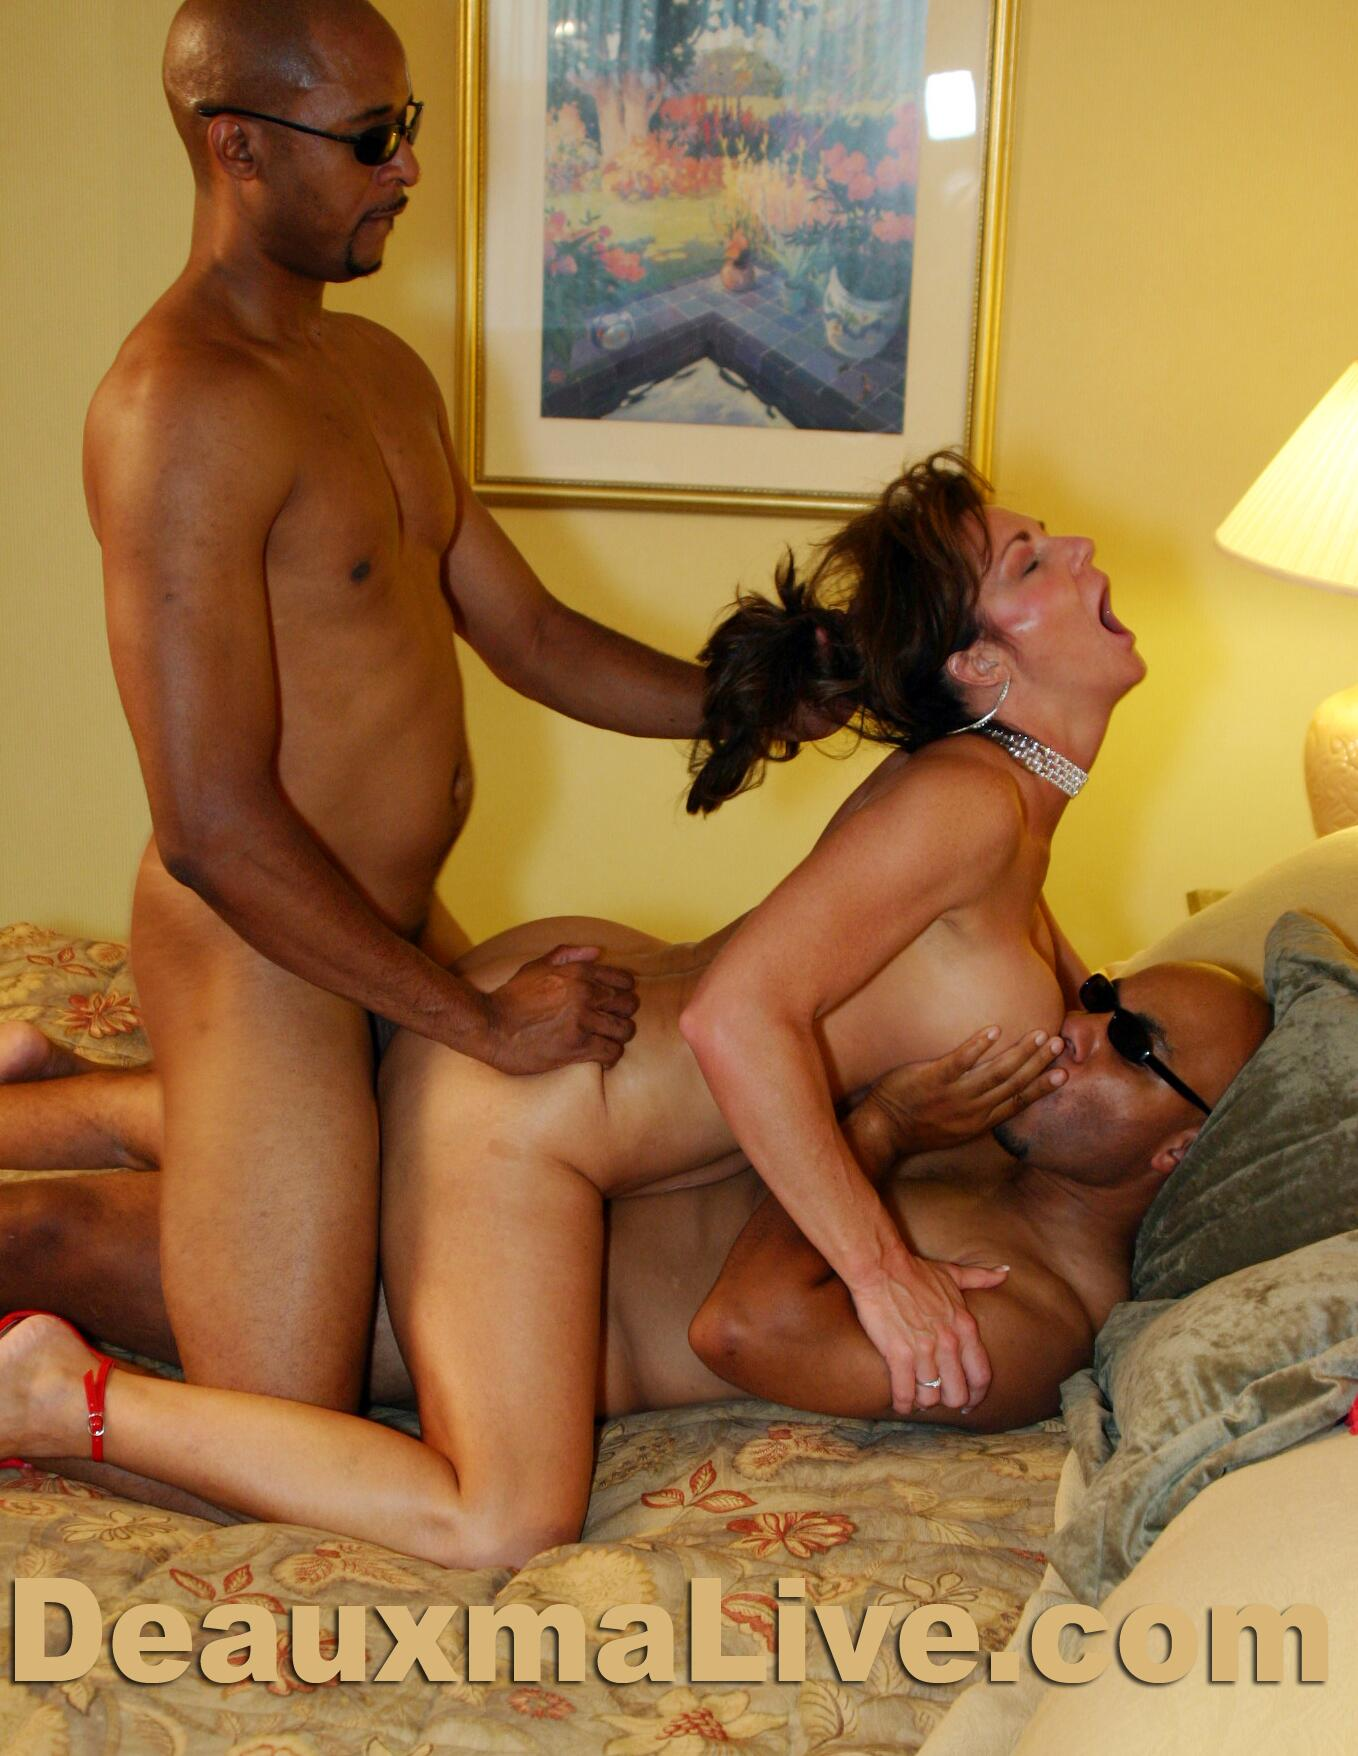 Bbc gangbang for uk milf tracy venus - 1 7